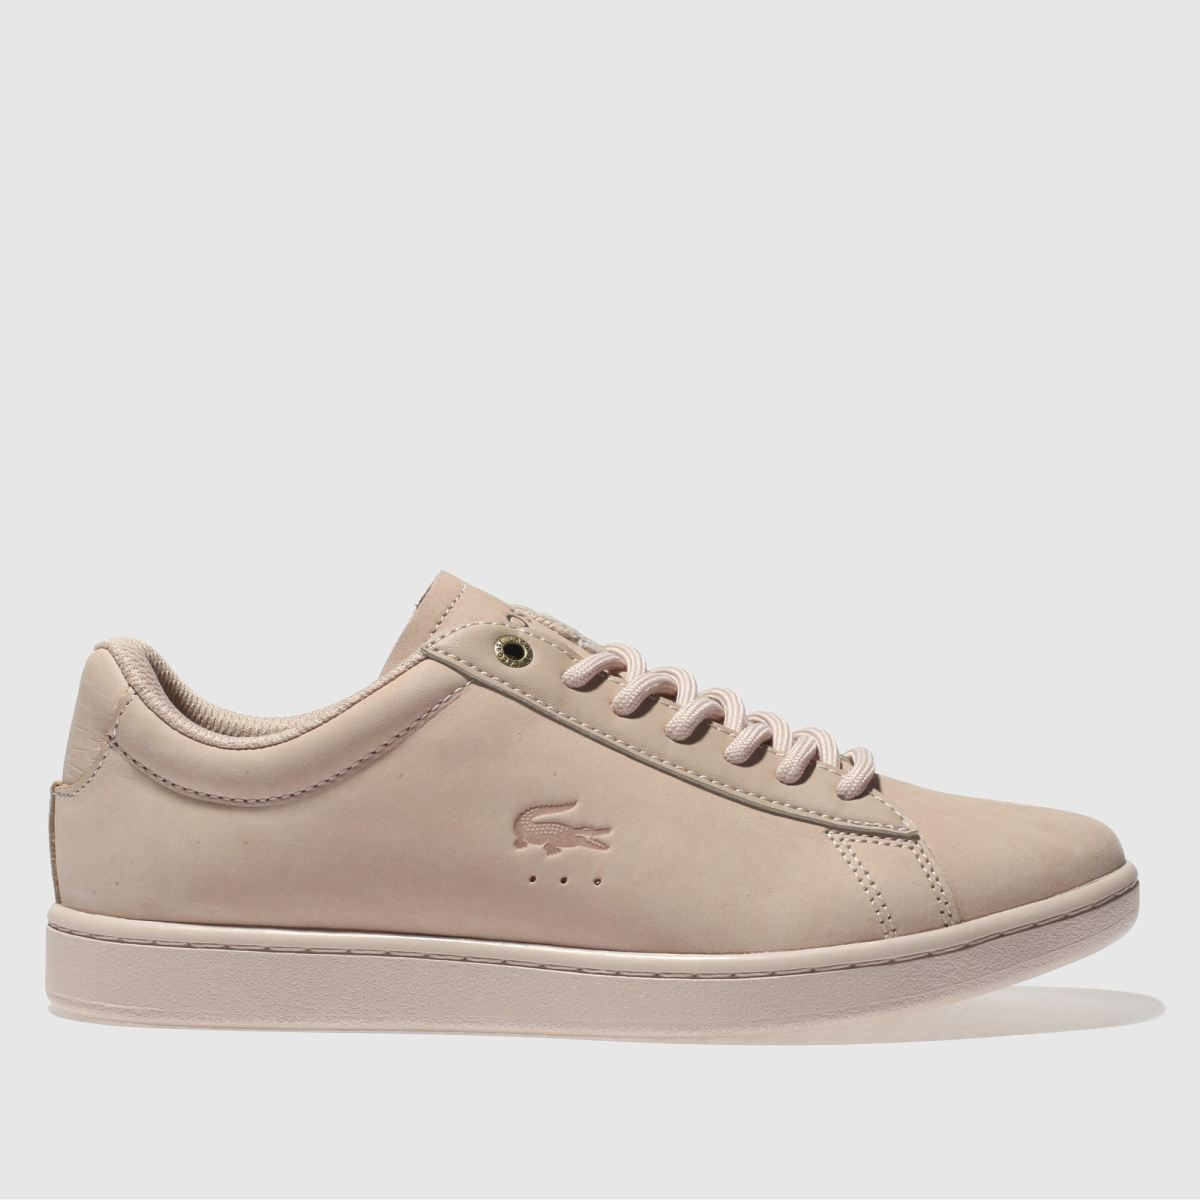 Lacoste Pale Pink Carnaby Evo Trainers